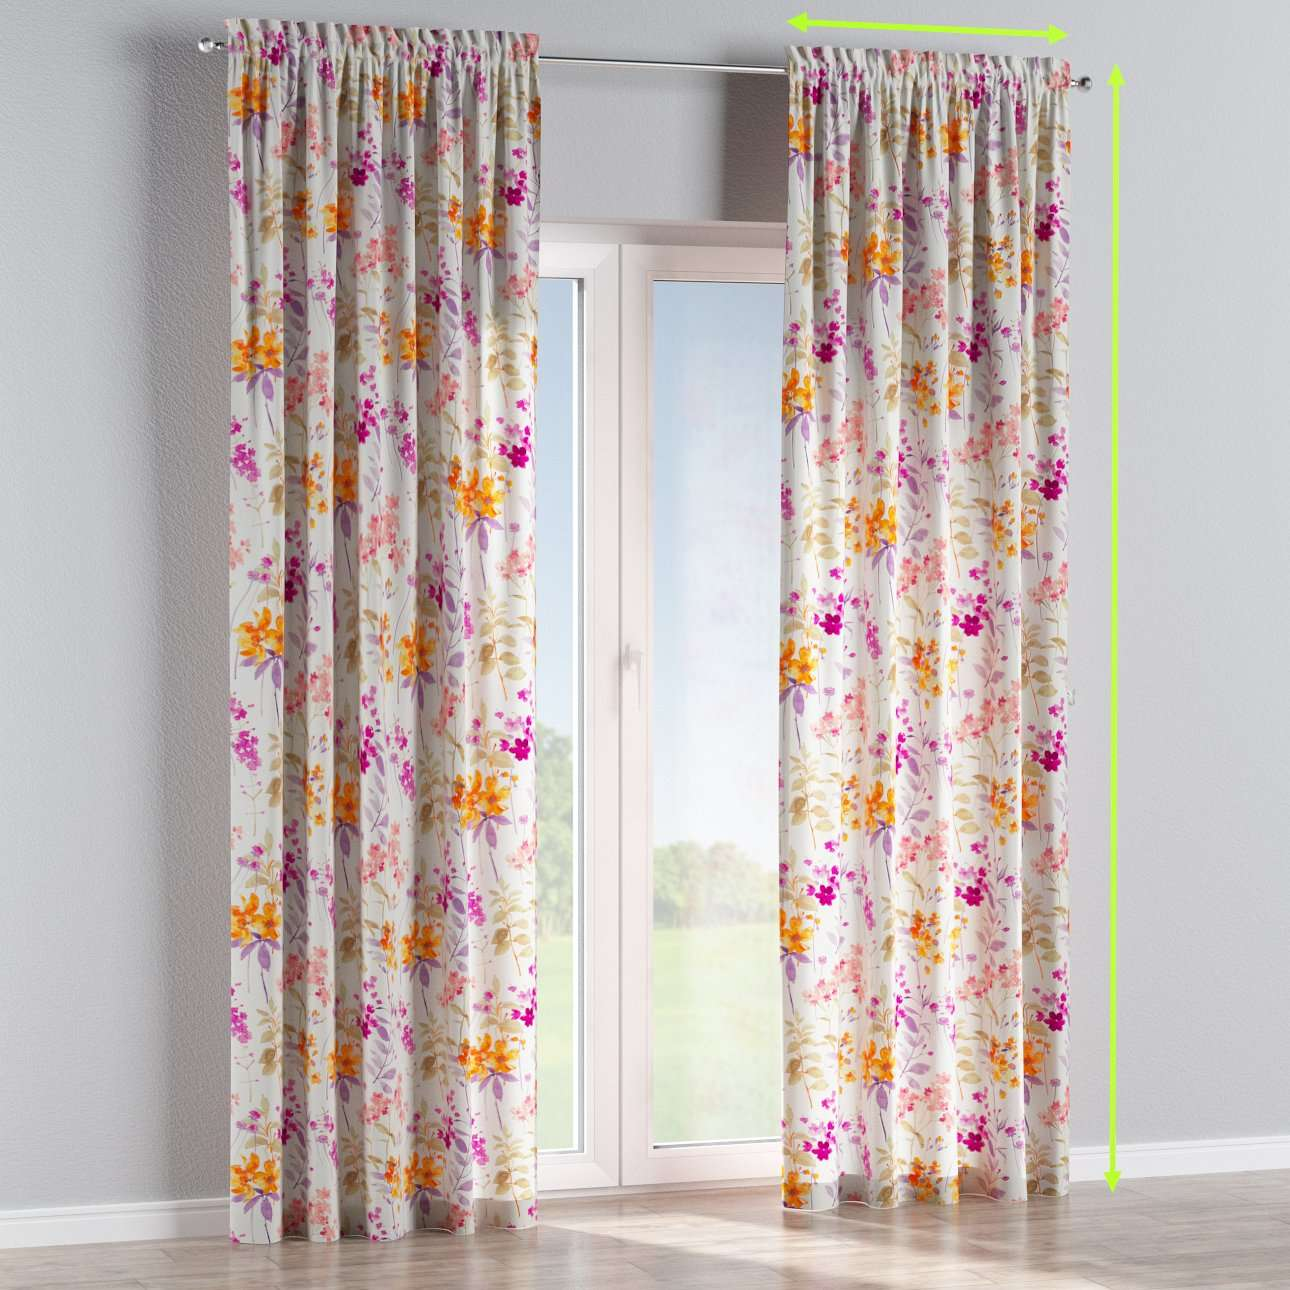 Slot and frill lined curtains in collection Monet, fabric: 140-04